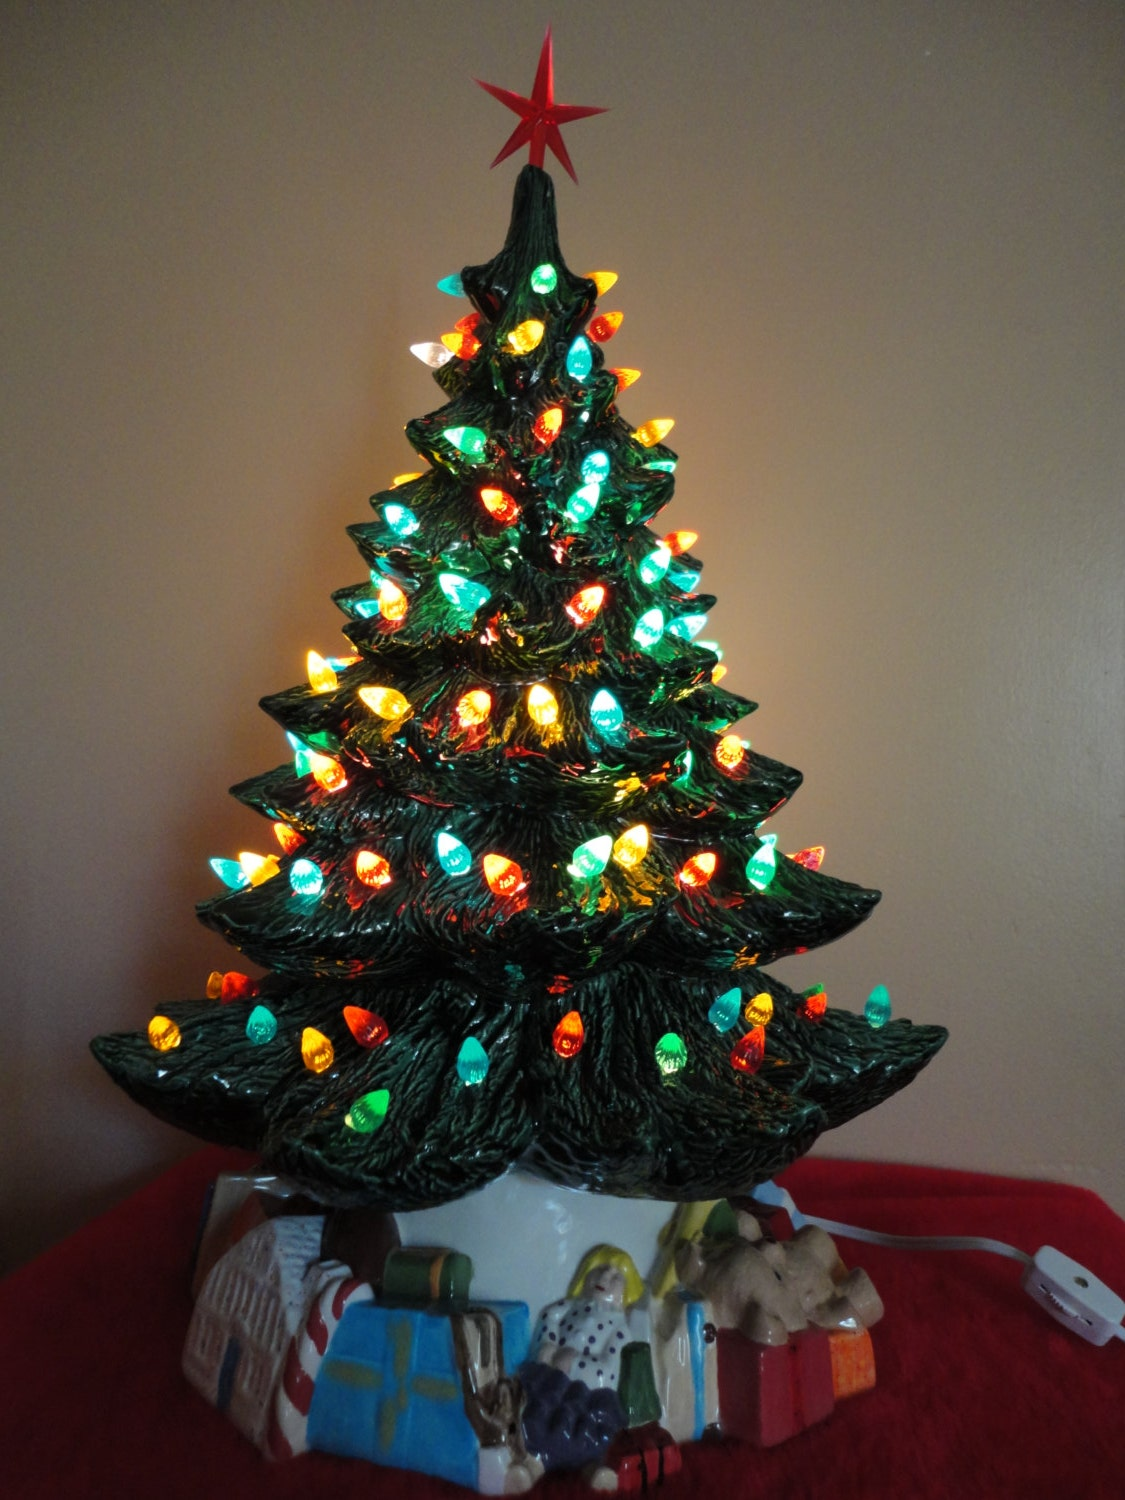 Ceramic Christmas Tree 19 Inches Tall With Toy Base And